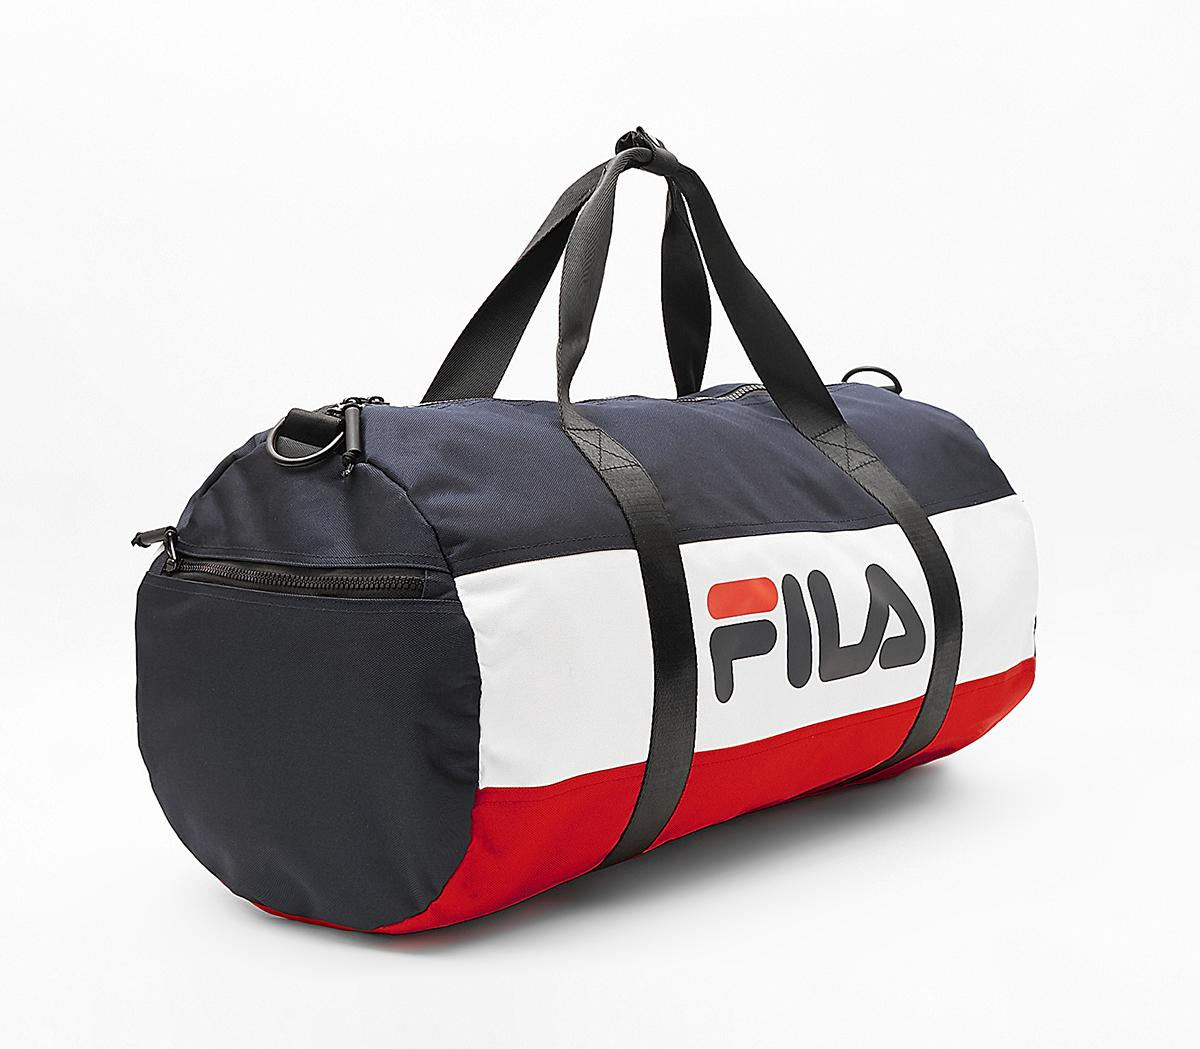 Ted Holdall Bag